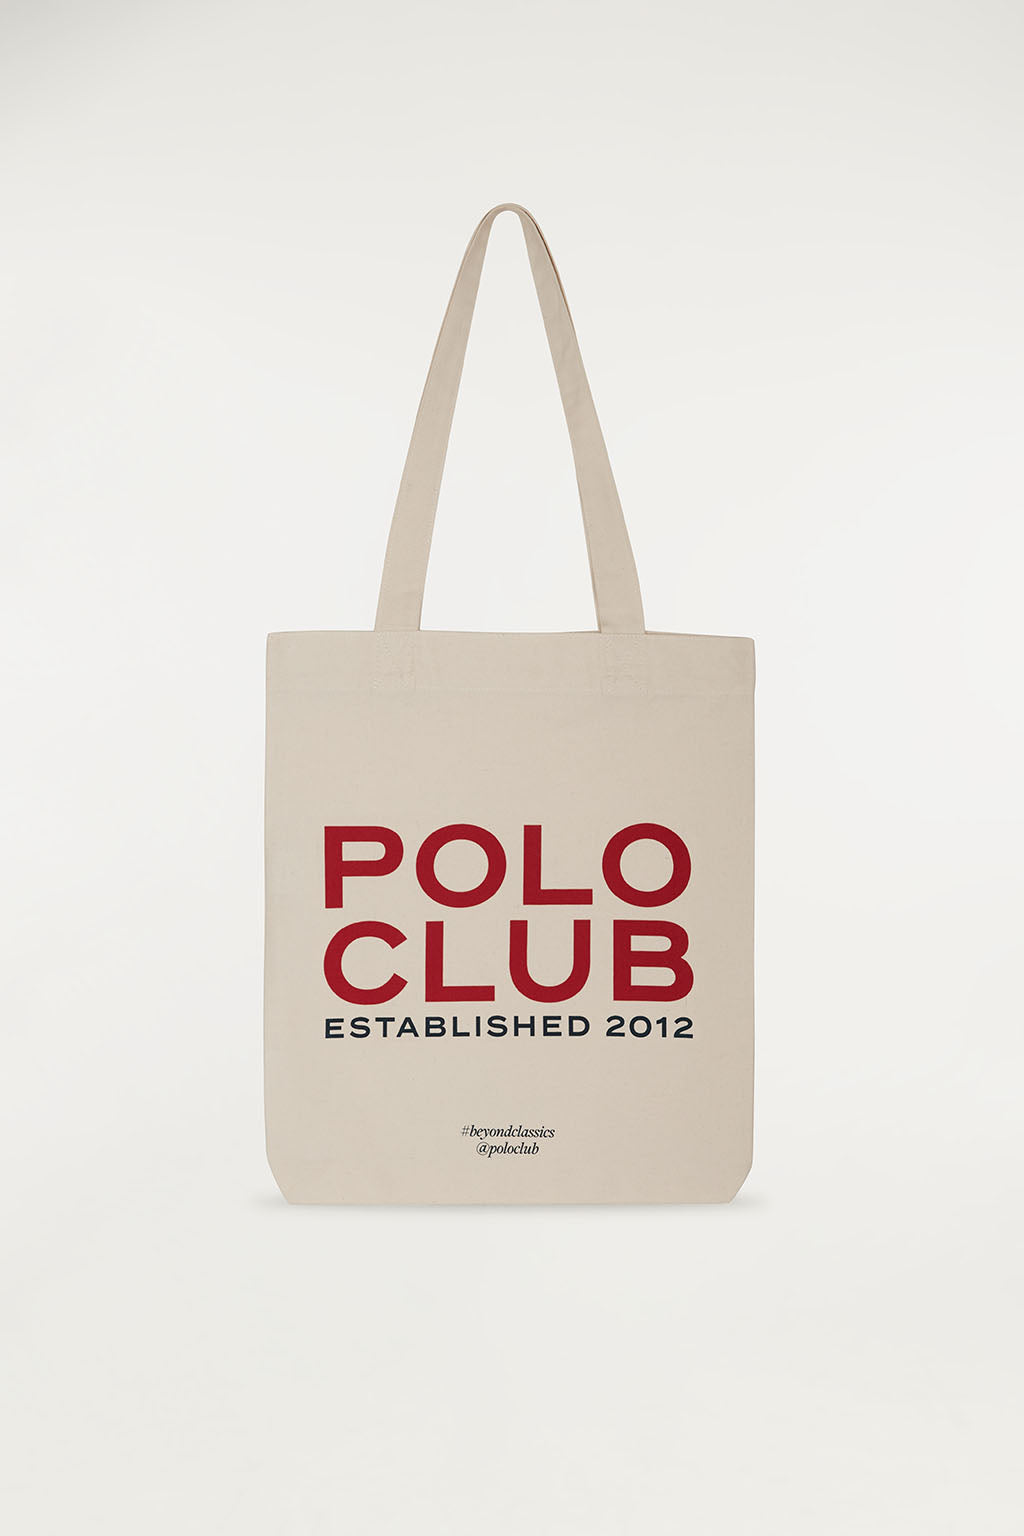 Shopping bag en crudo con impresión frontal en rojo